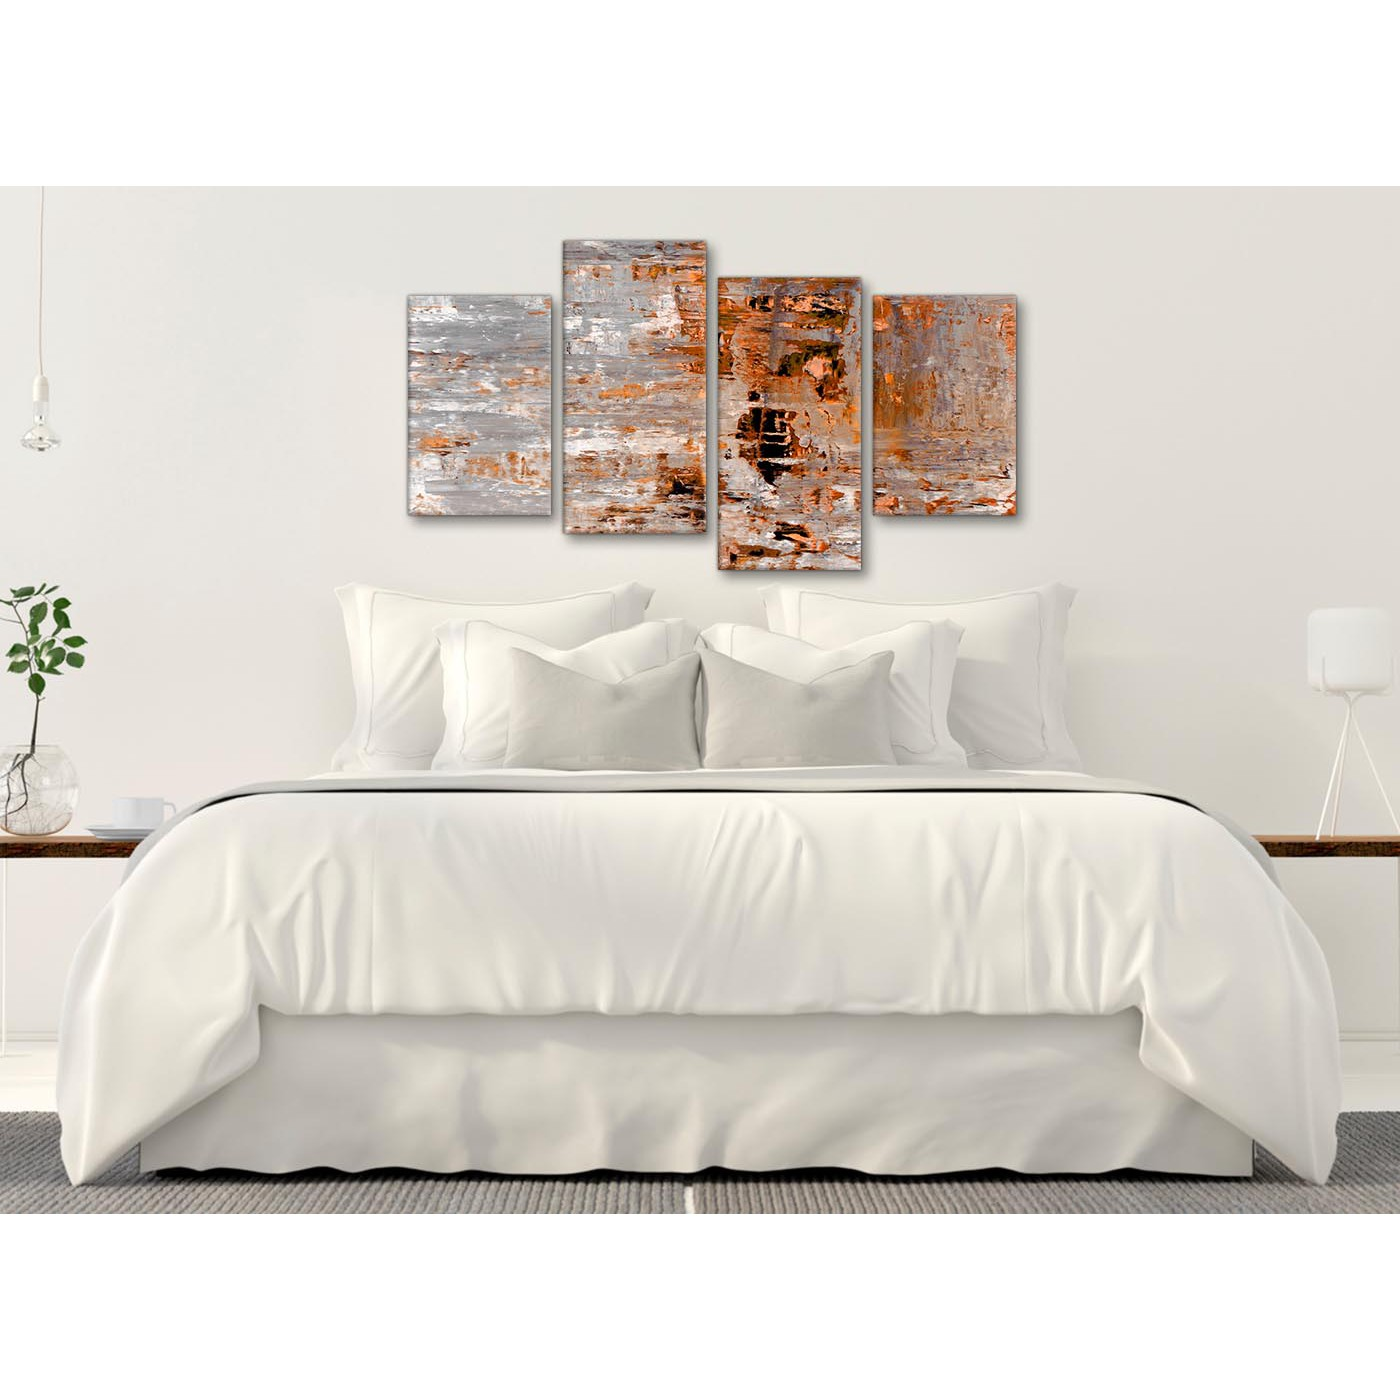 Large burnt orange grey painting abstract bedroom canvas - Burnt orange bedroom accessories ...